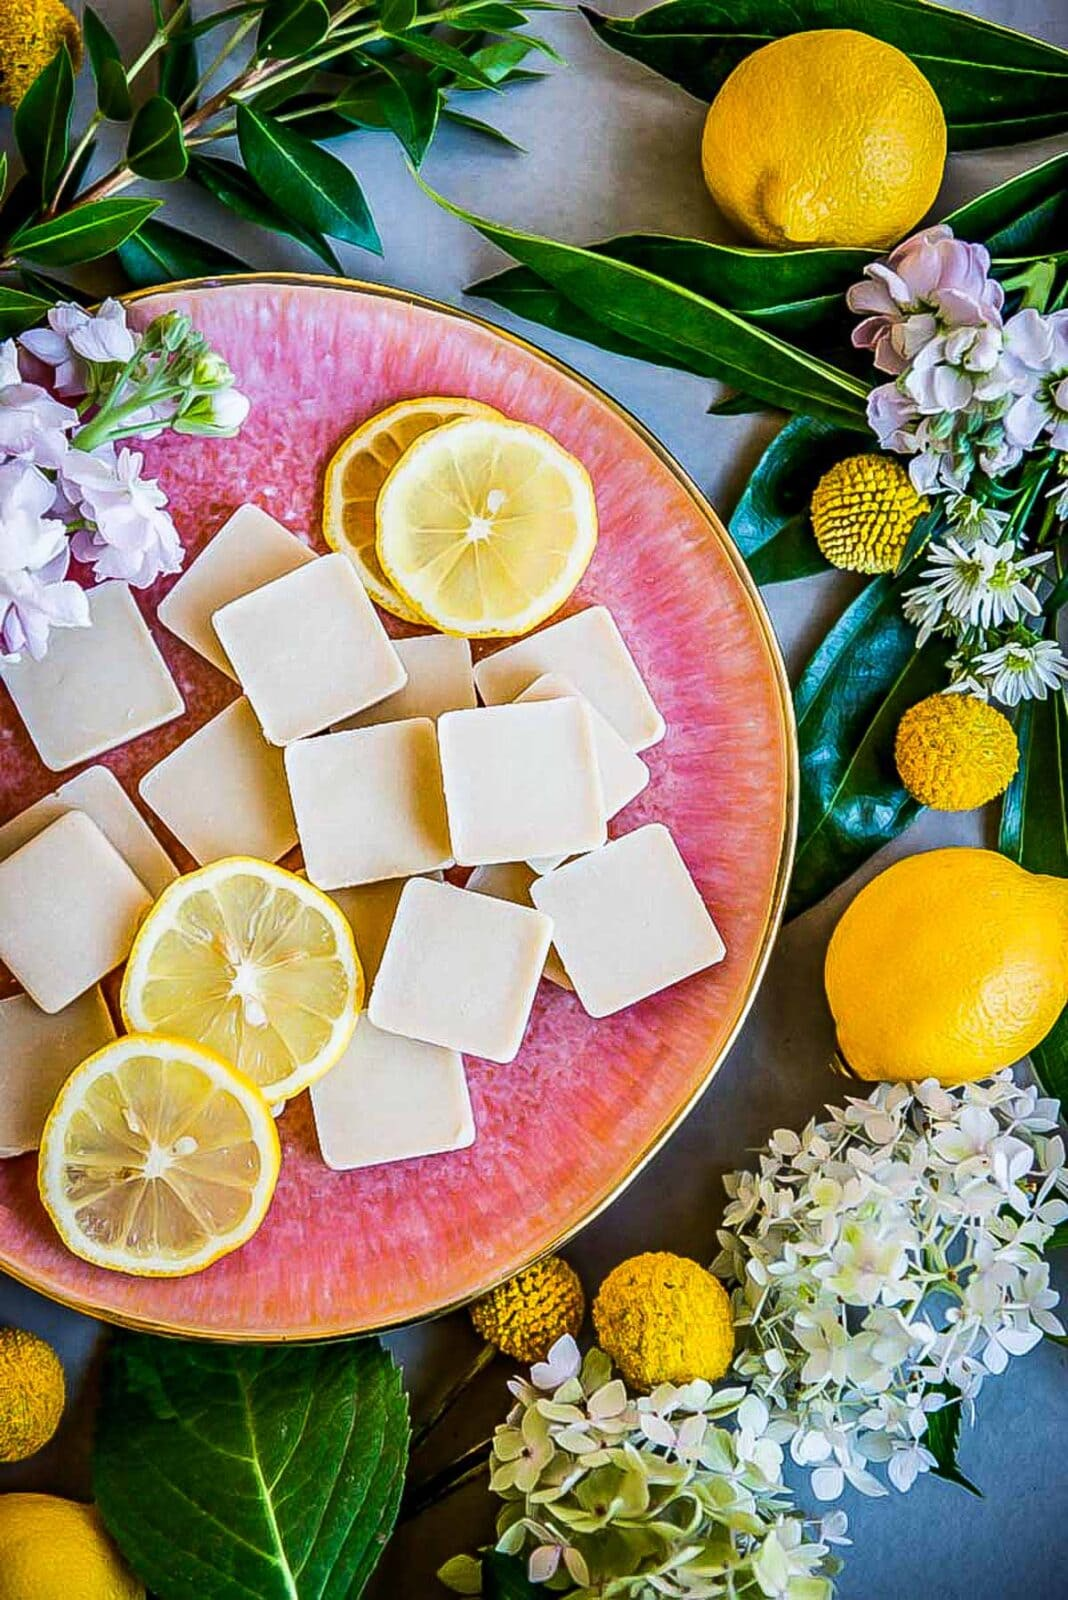 Lemon fat bombs for weight loss